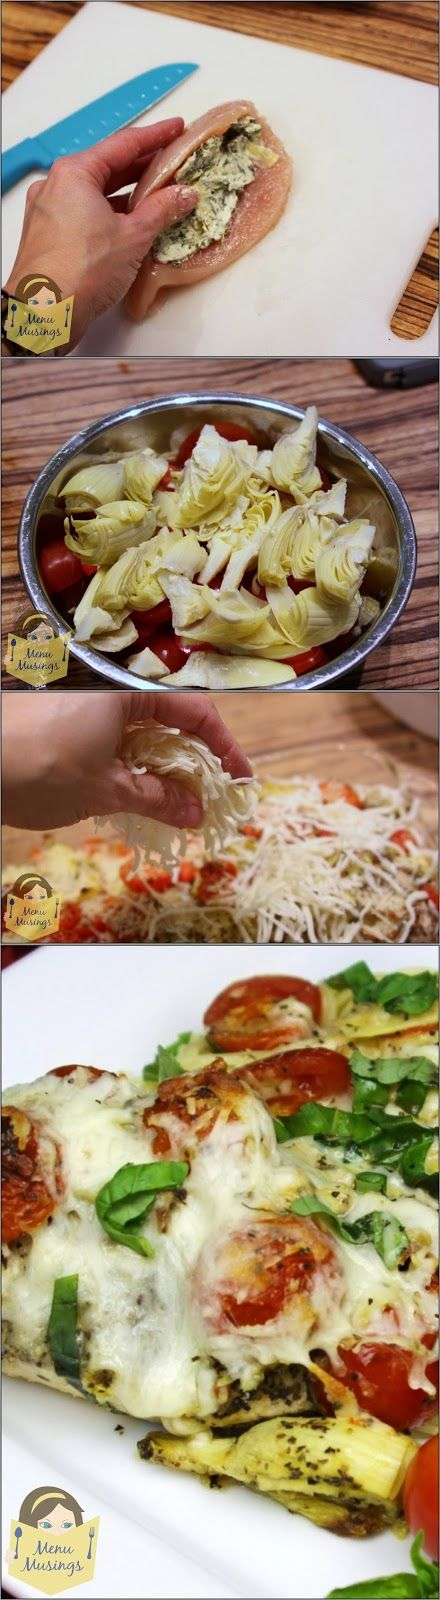 Step-by-step tutorial to making an easy Spinach Artichoke Dip Stuffed Chicken Breasts.  Video tutorial included. how to stuff a chicken breast, easy chicken recipes, date night recipes, supper club recipes, family friendly recipes, kids in the kitchen, kids can cook,